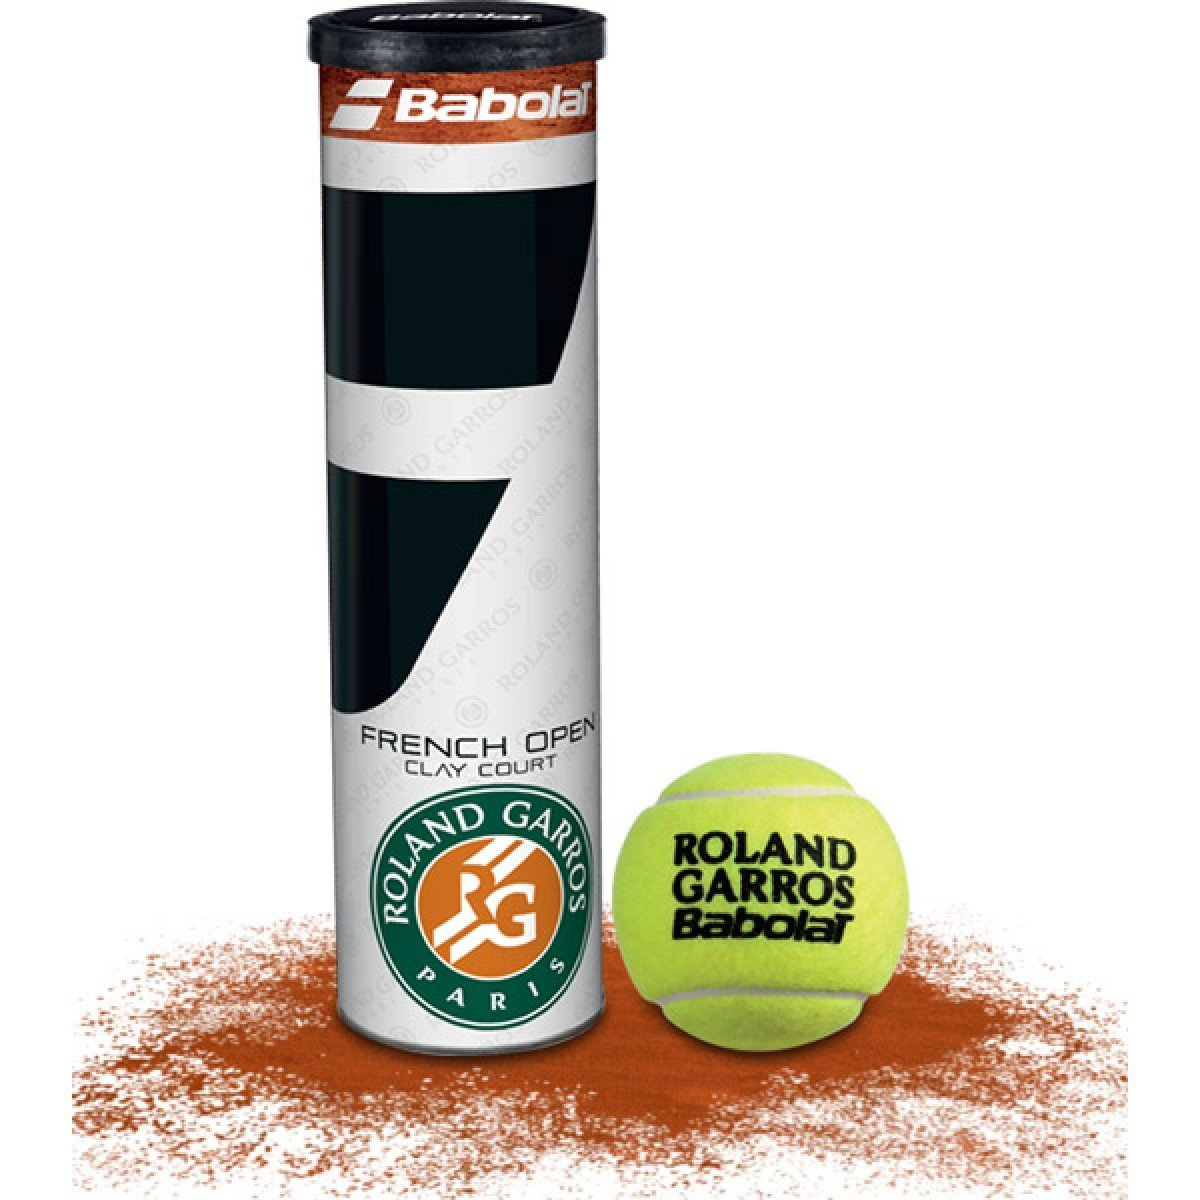 Tube de 4 balles Babolat French Open Clay Court - Mytennishop